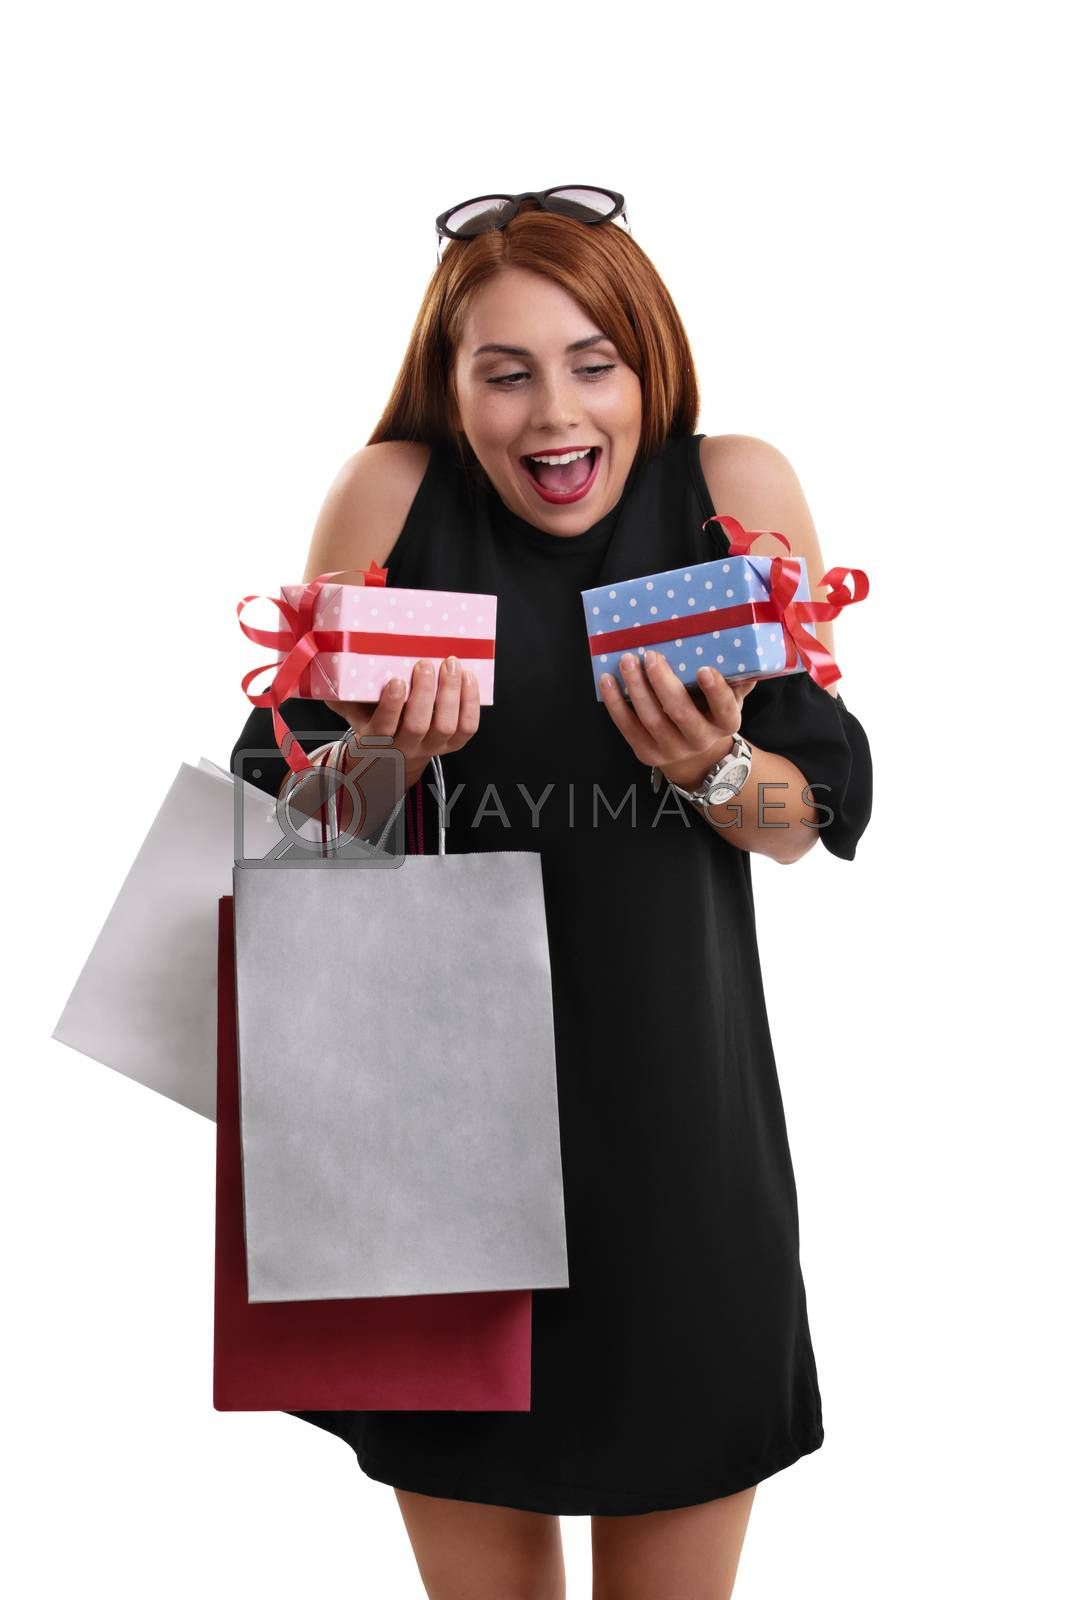 Excited beautiful young woman in a black dress holding shopping bags and presents, isolated on a white background.